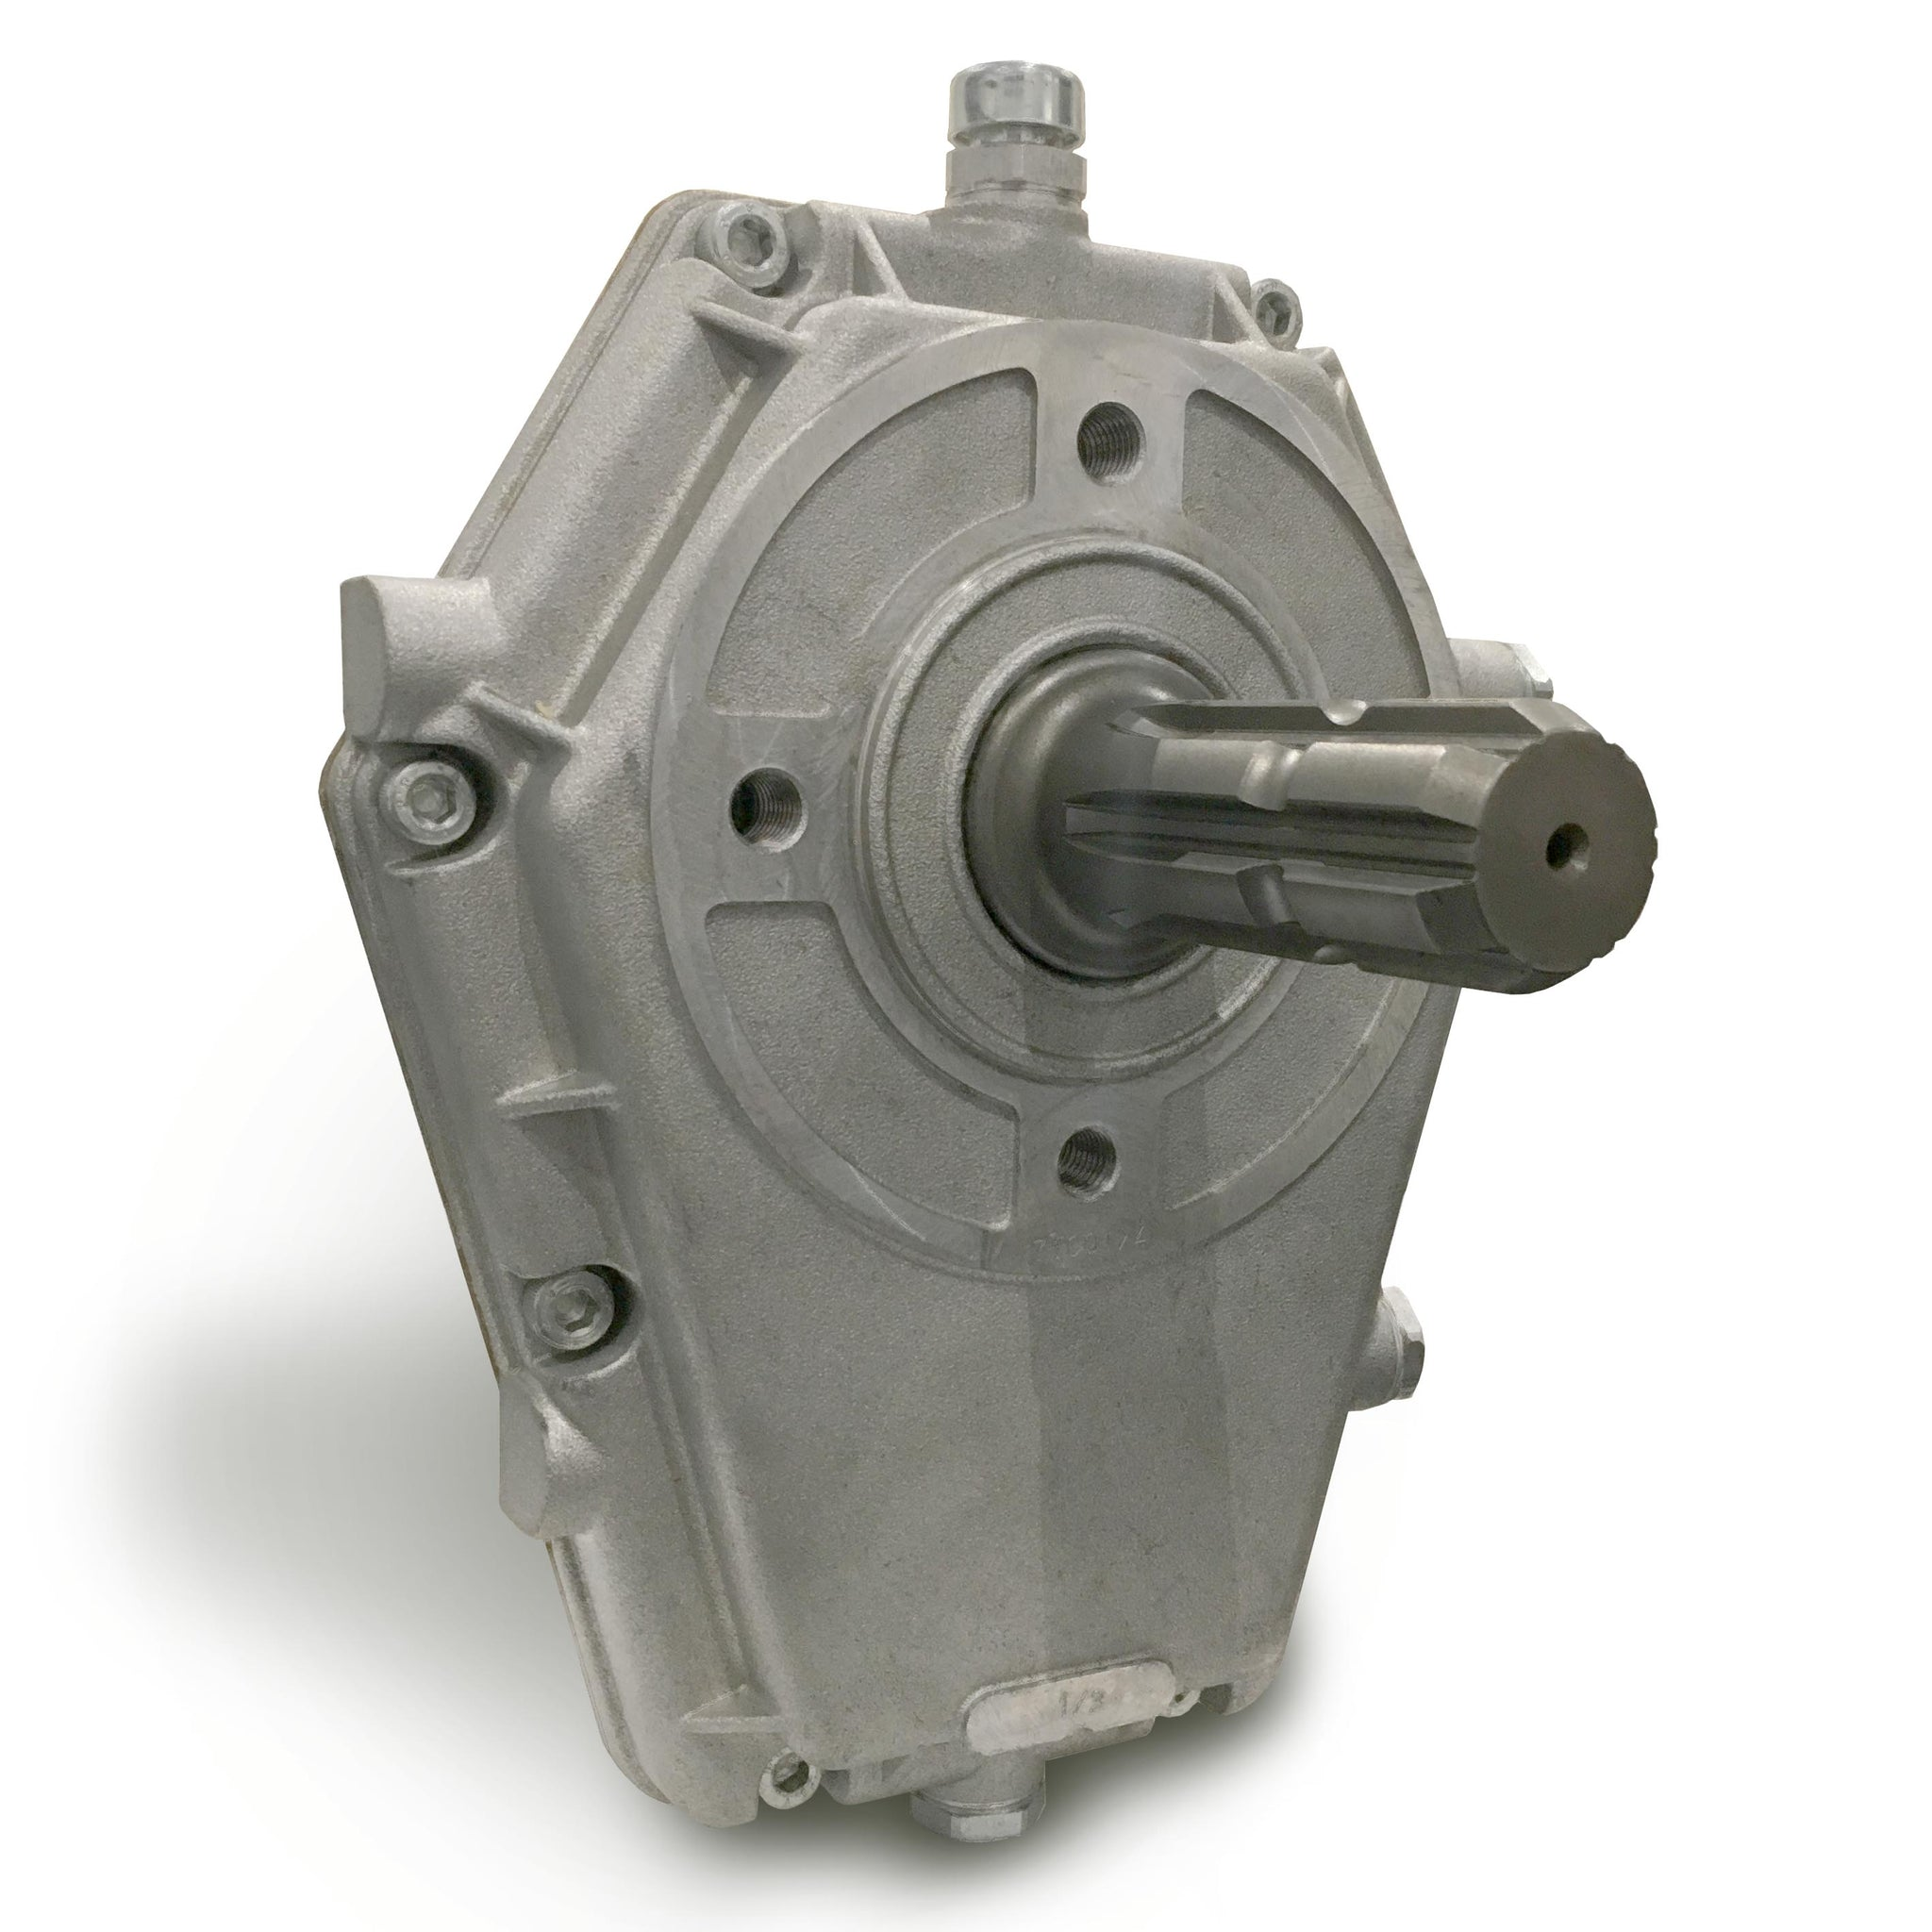 PTO Gear Box 3:1 ratio for Group 2 or 3 Pumps - Male Shaft